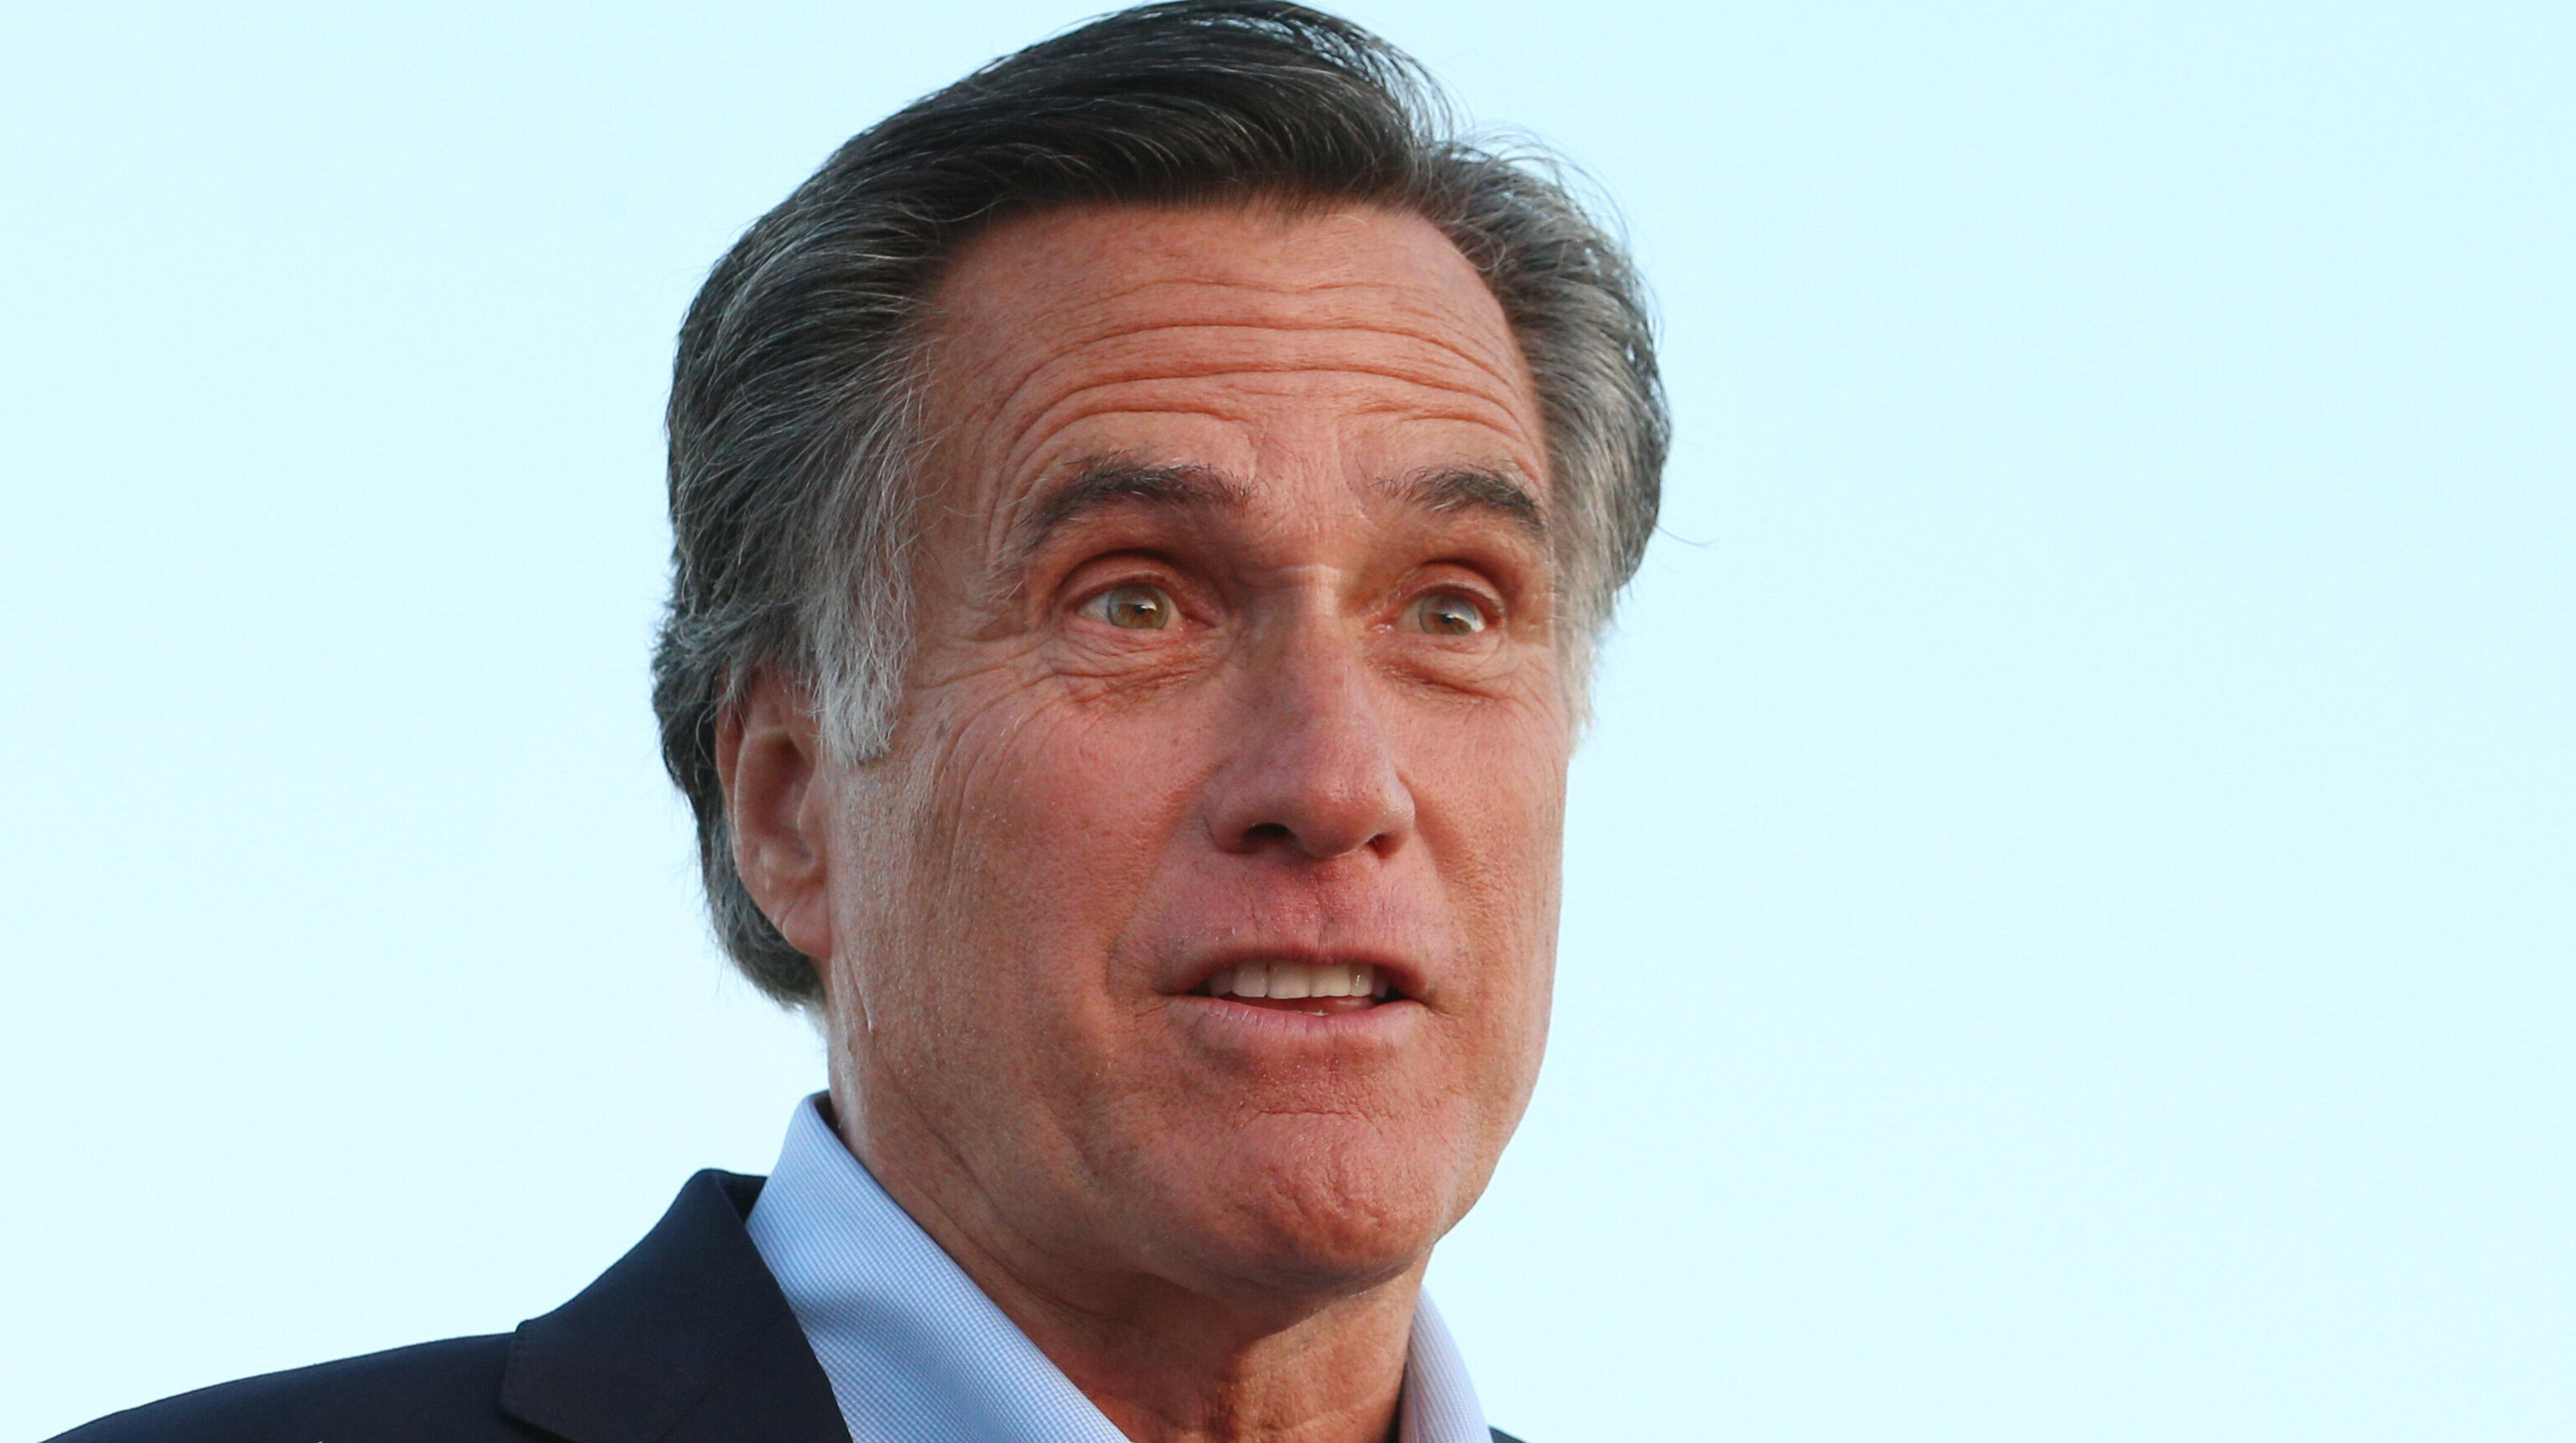 Mitt Romney's 'Game Of Thrones' Gift For Wife Goes Viral For Unfortunate Reason